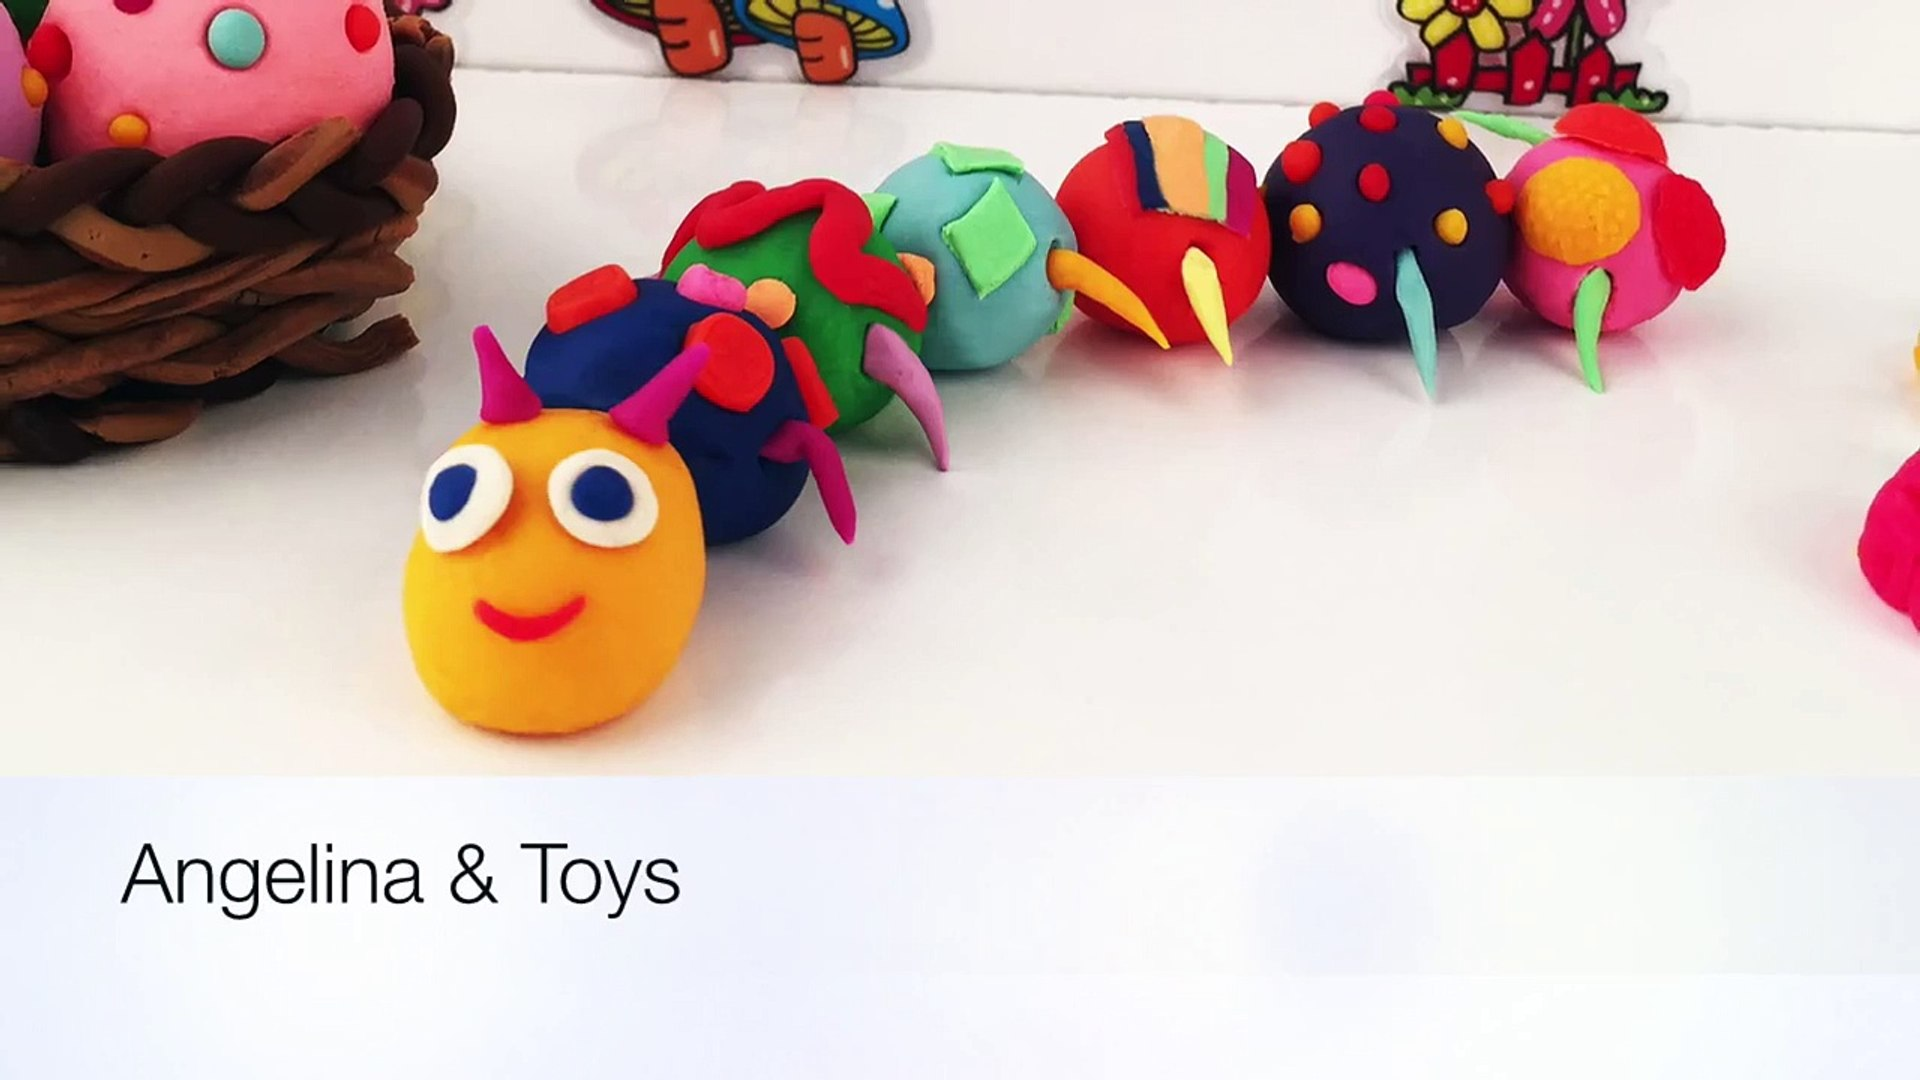 Kids Toys BeeTube - Play Doh Kids Fun Crafts, Animals Playdough Learning Activities CATERP